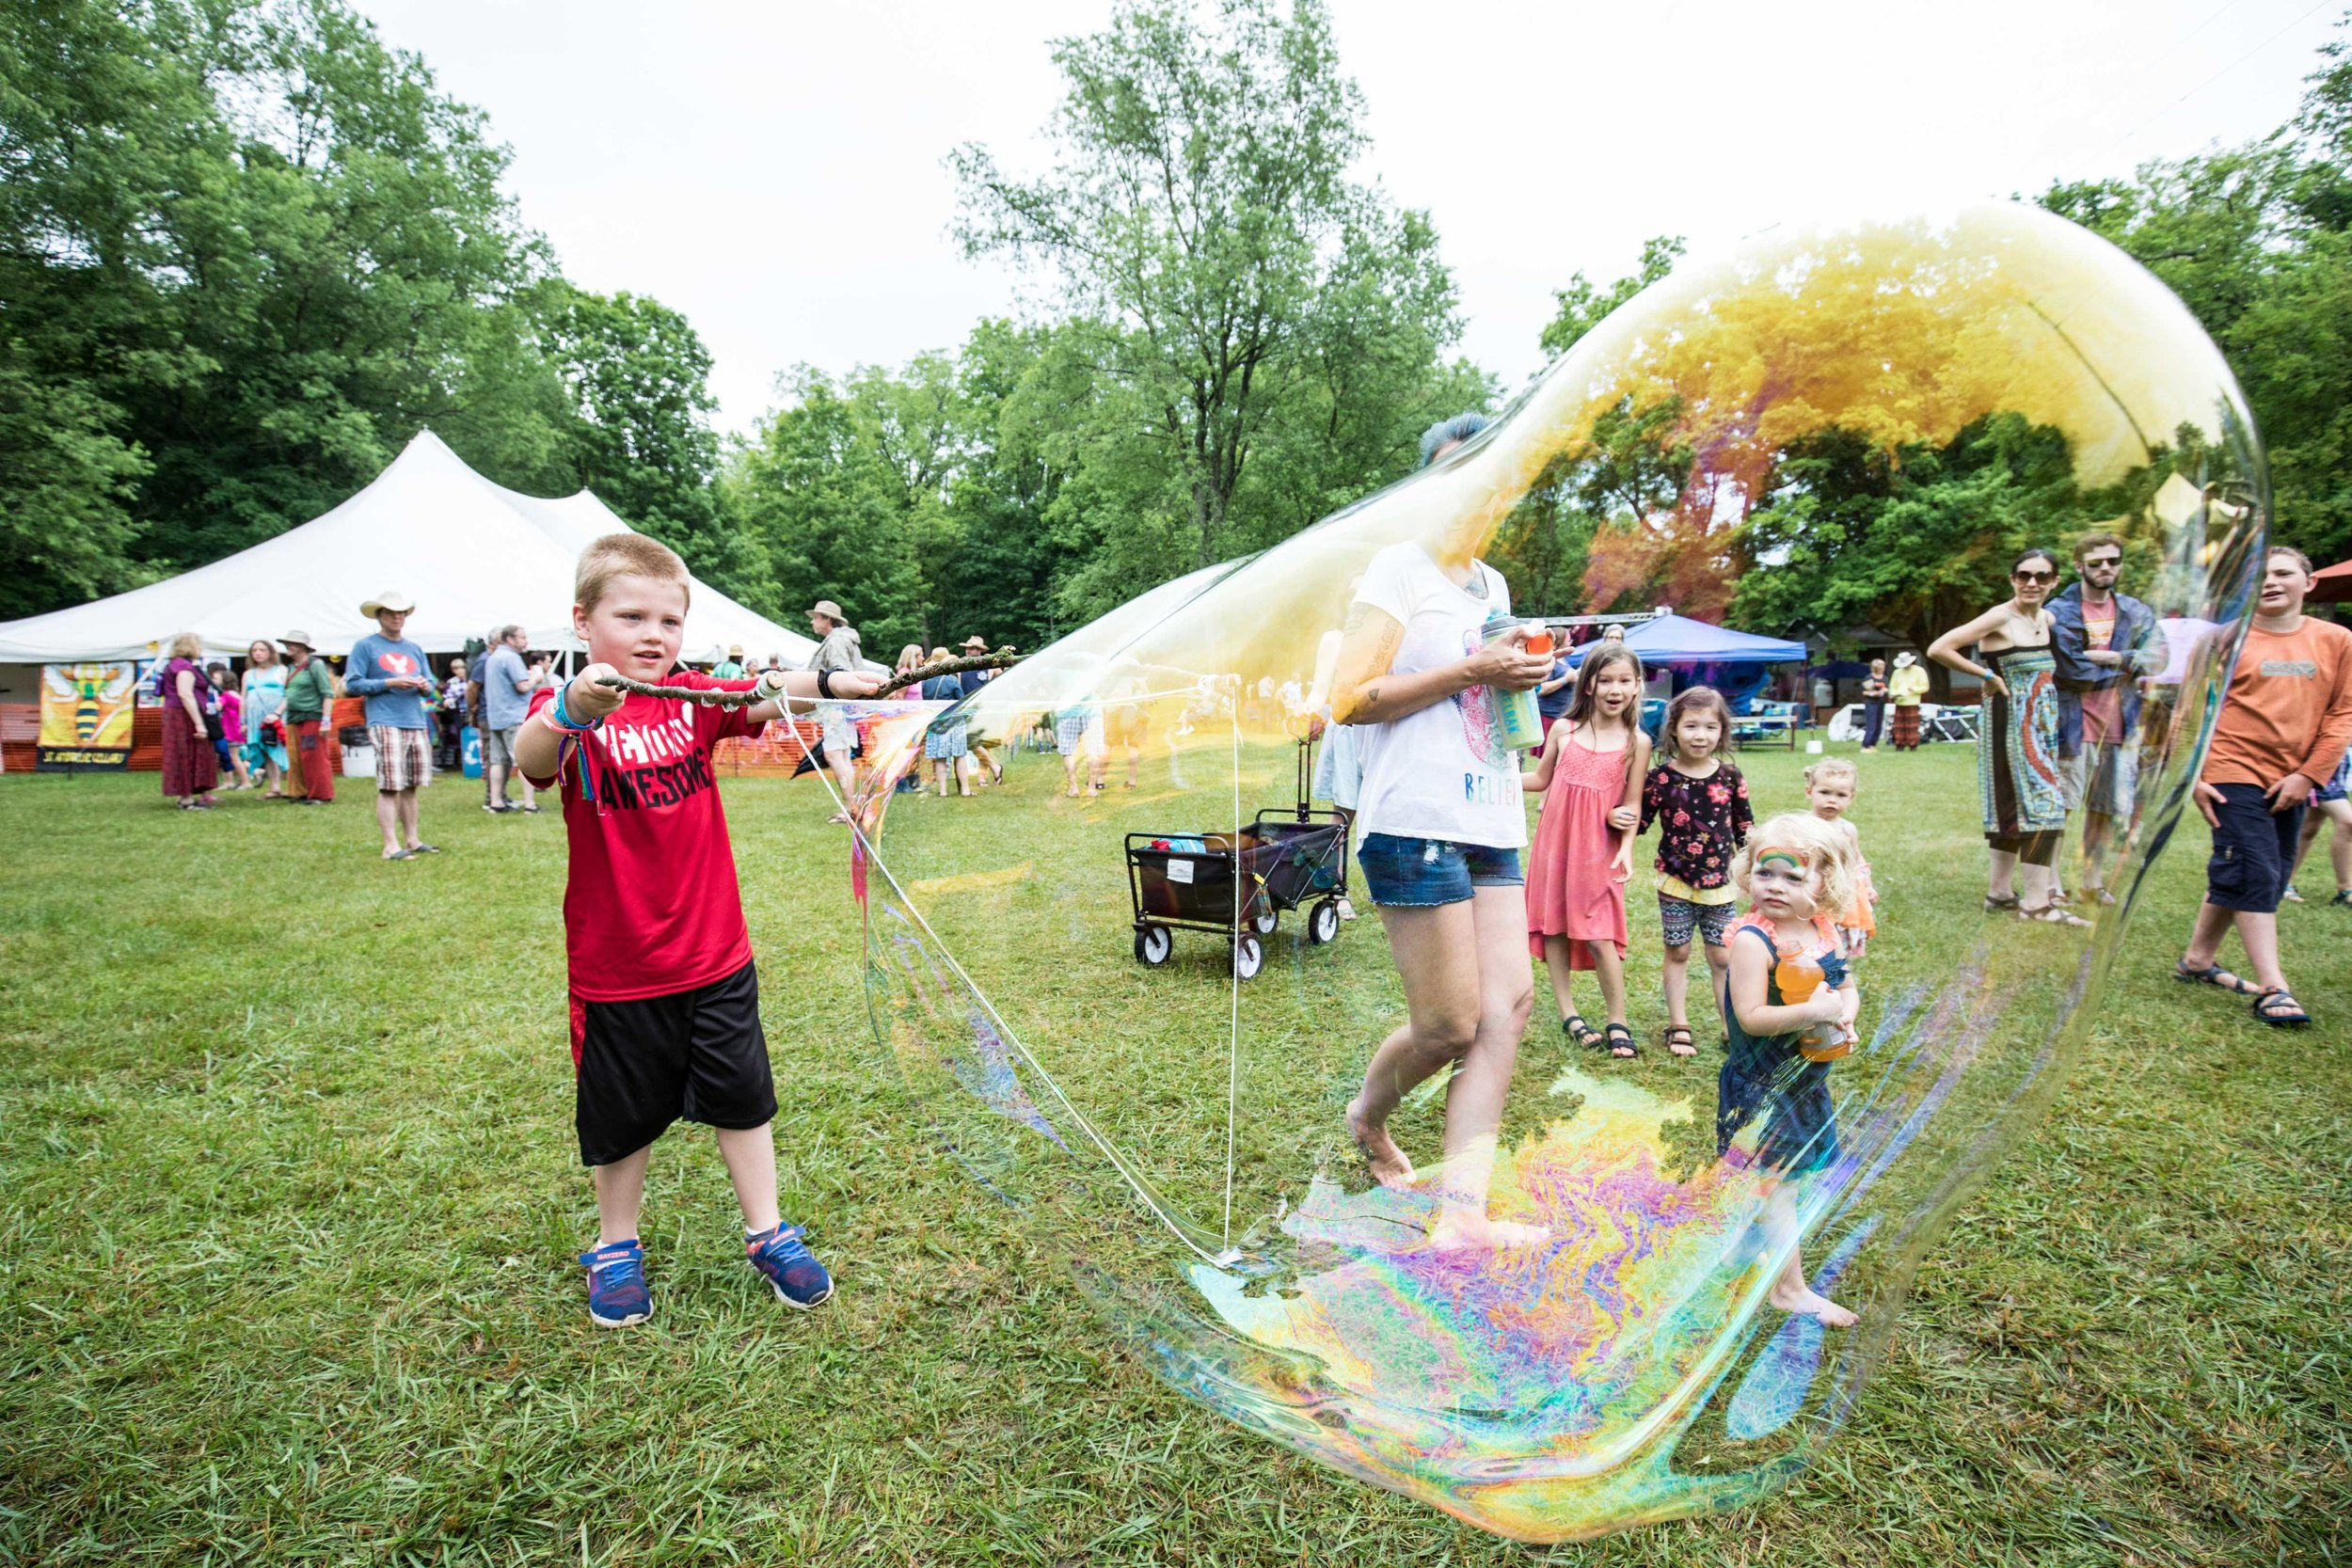 A kid making an enormous bubble